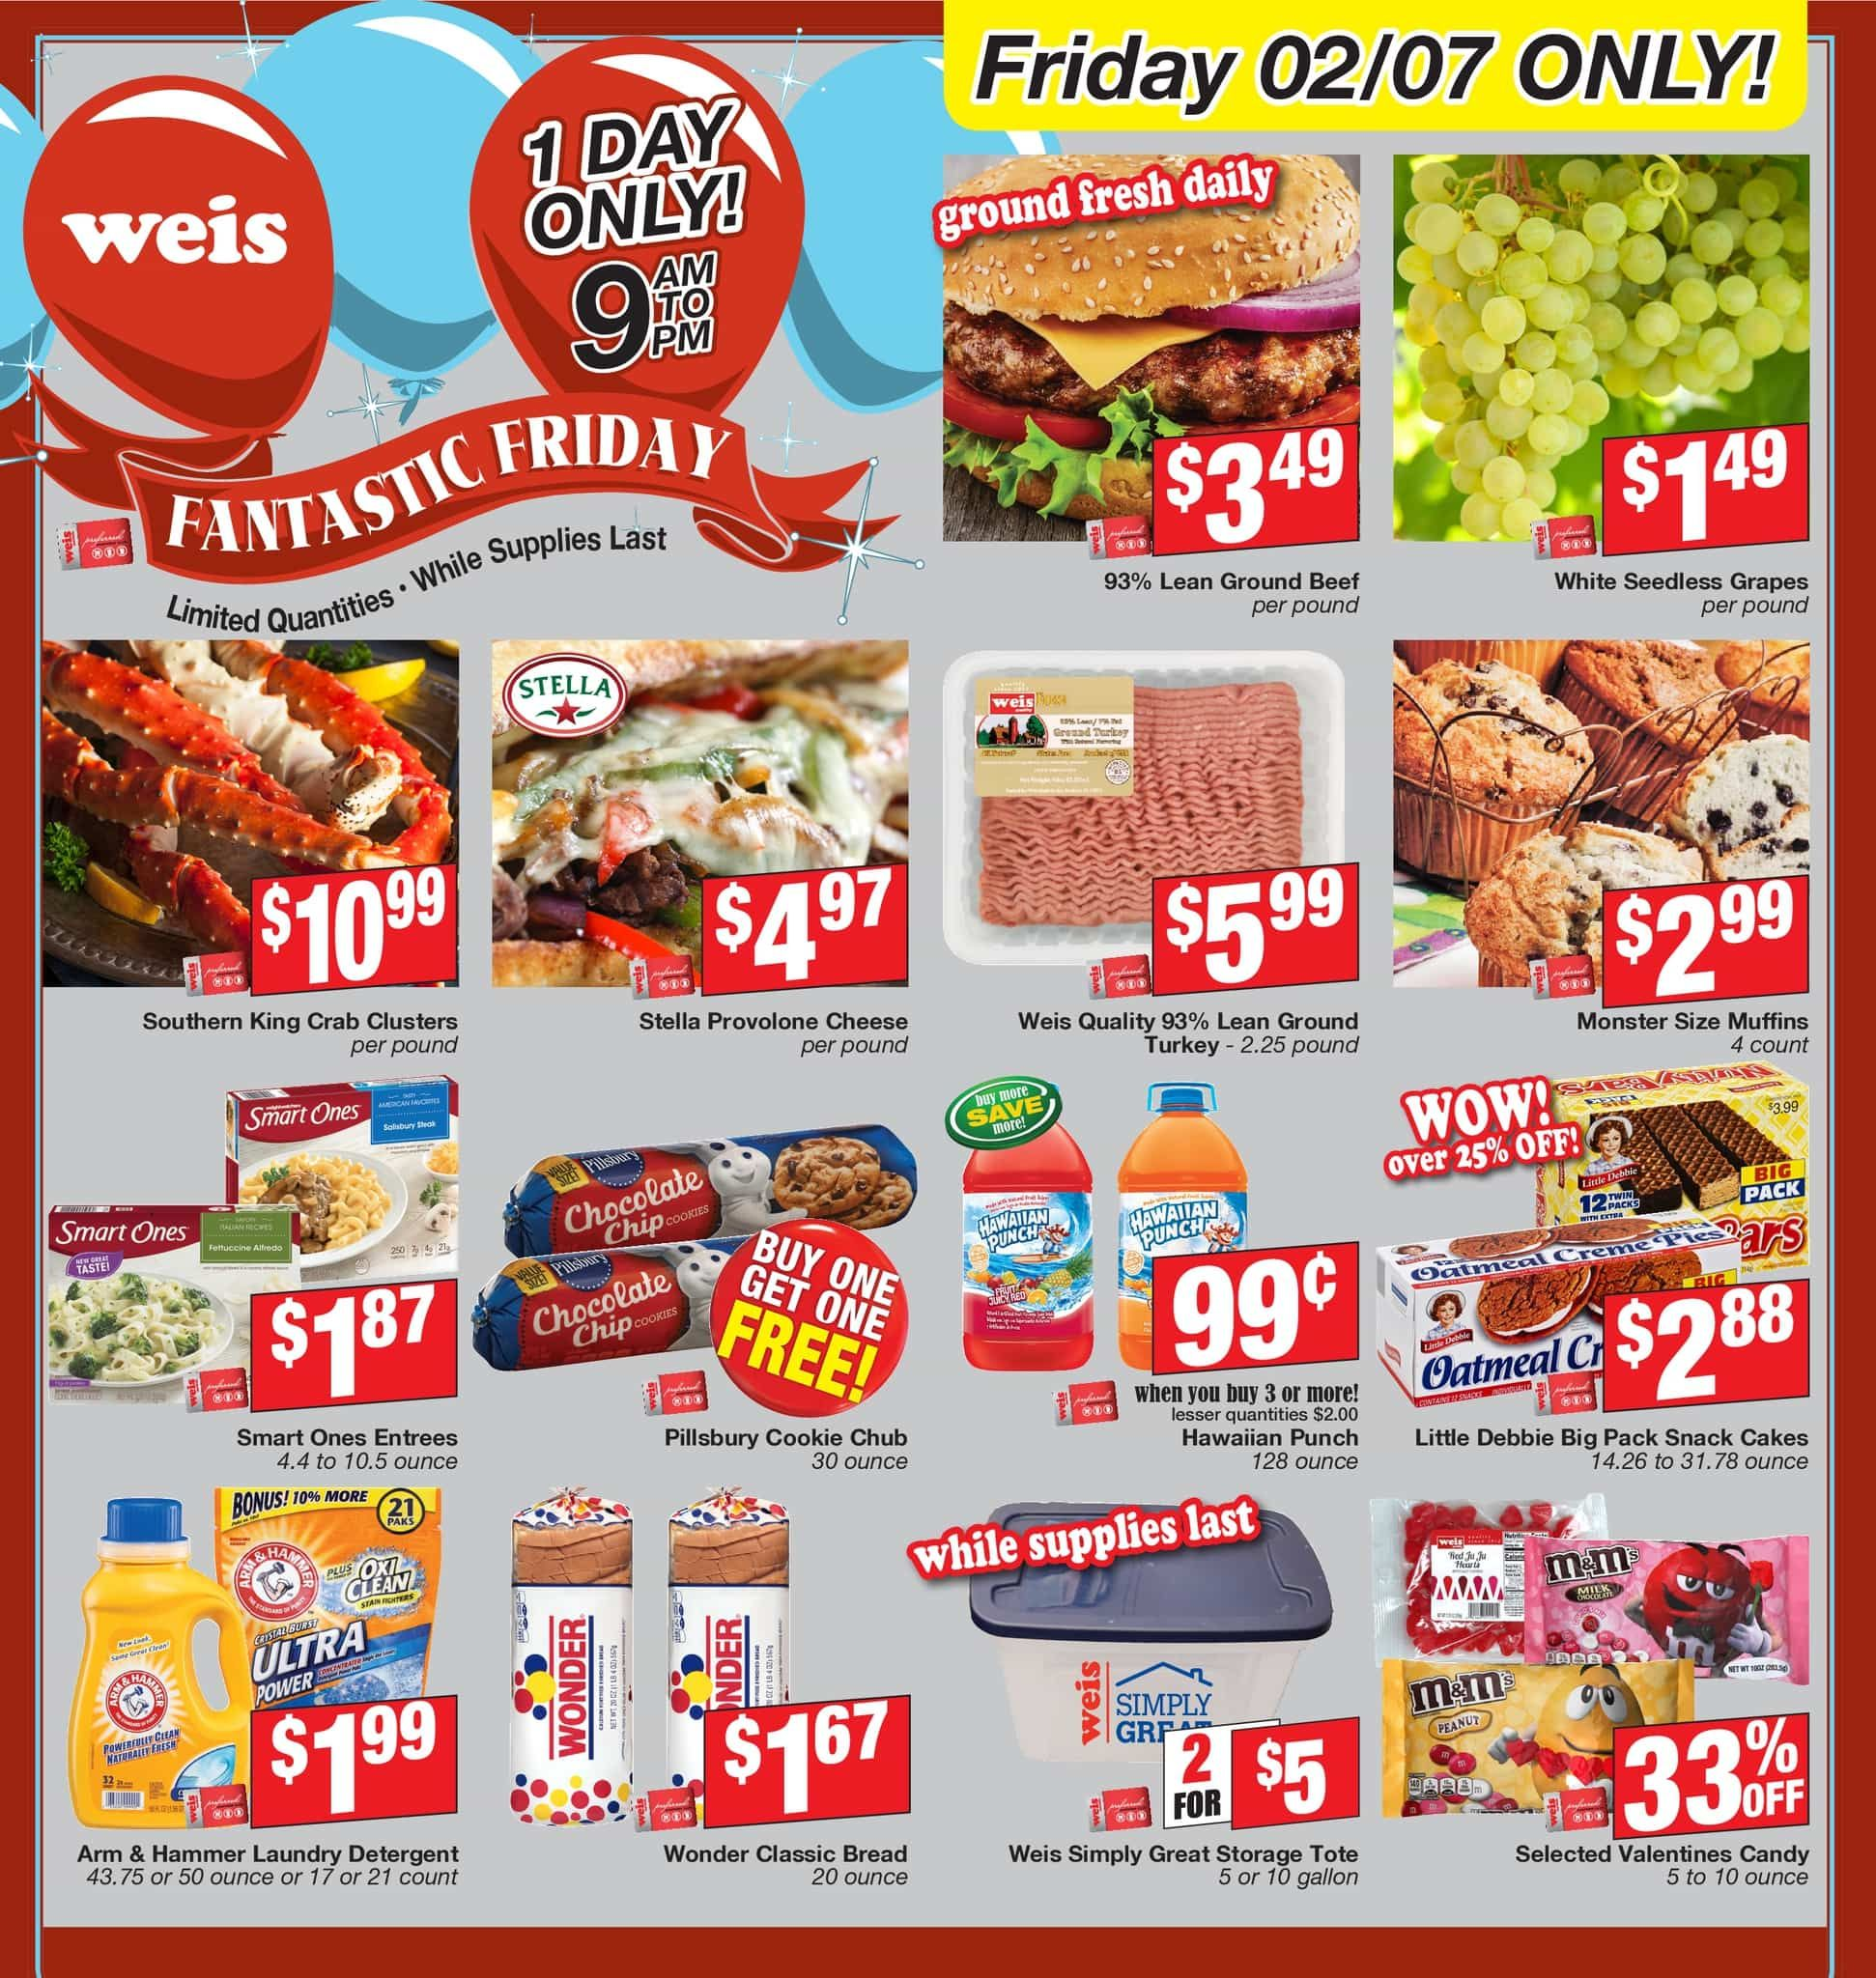 Weis Markets Fantastic Friday Flyer March 6, 2020